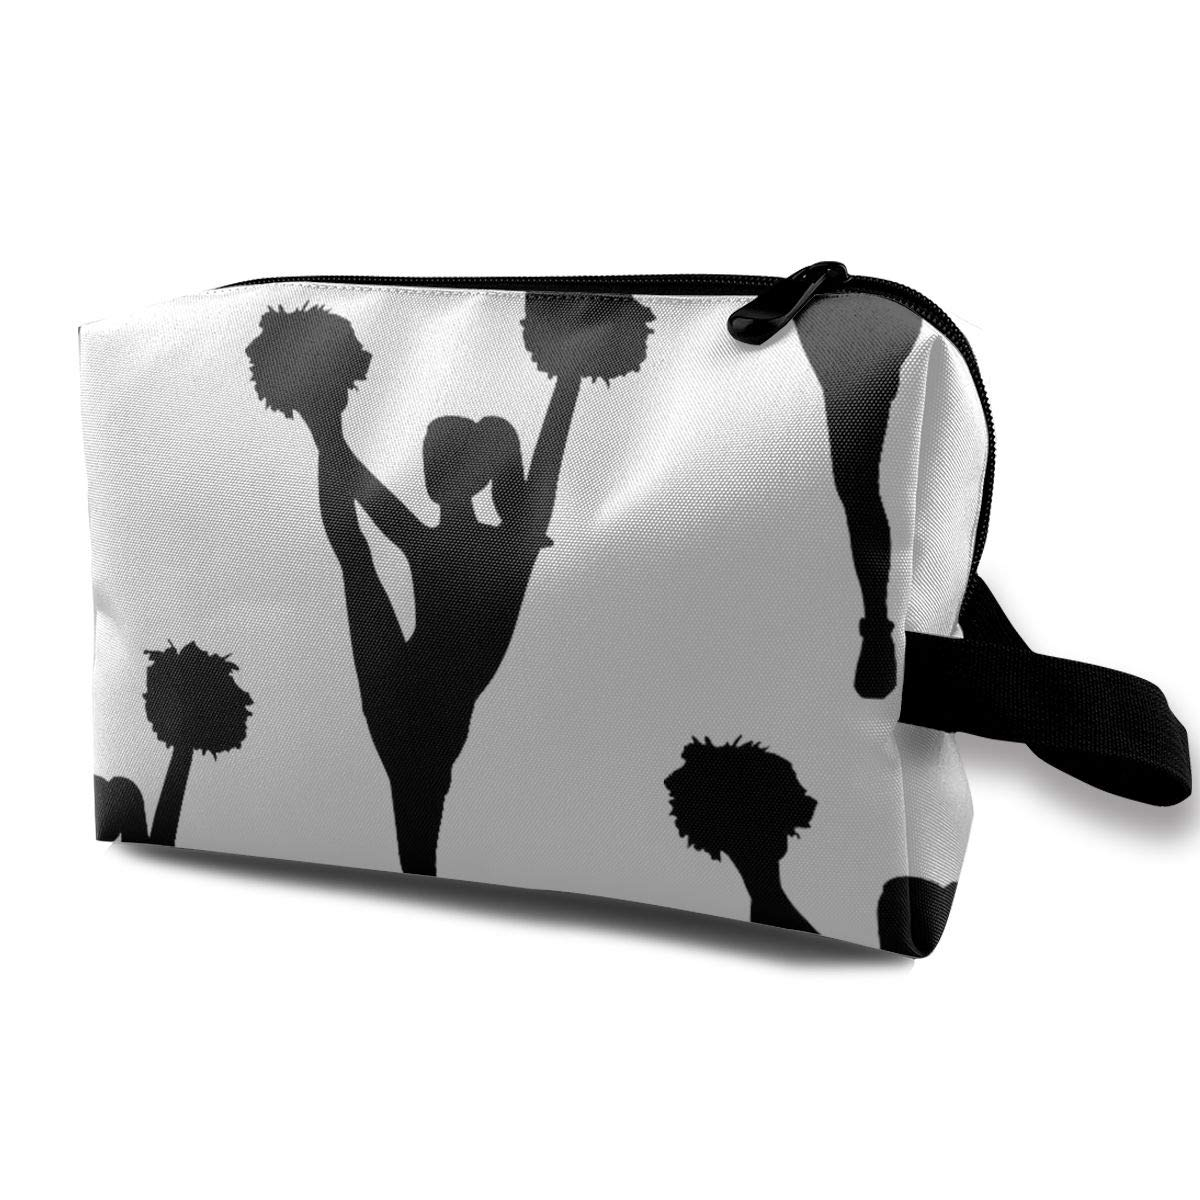 Cheerleader Cosmetic Bag Makeup Bags For Women,Travel Makeup Bags Roomy Toiletry Bag Accessories Organizer With Zipper